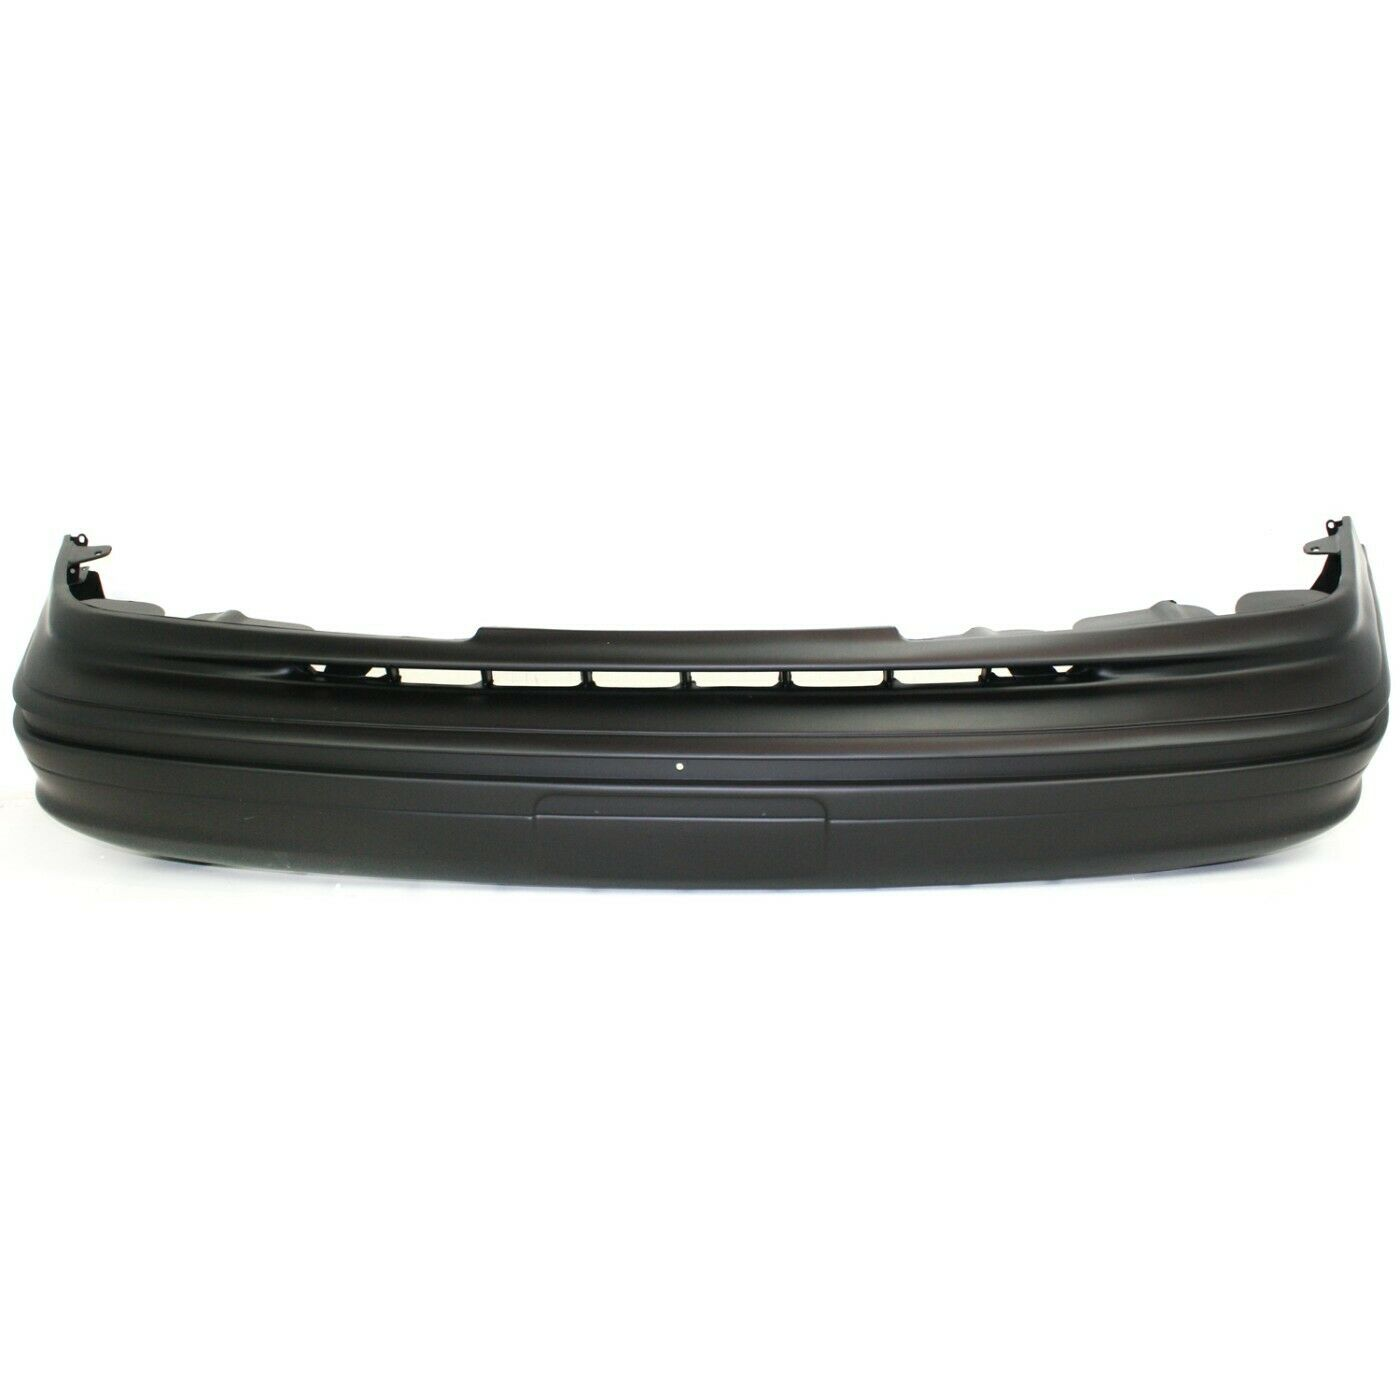 1995-1997 Ford Crown Victoria Front Bumper Painted